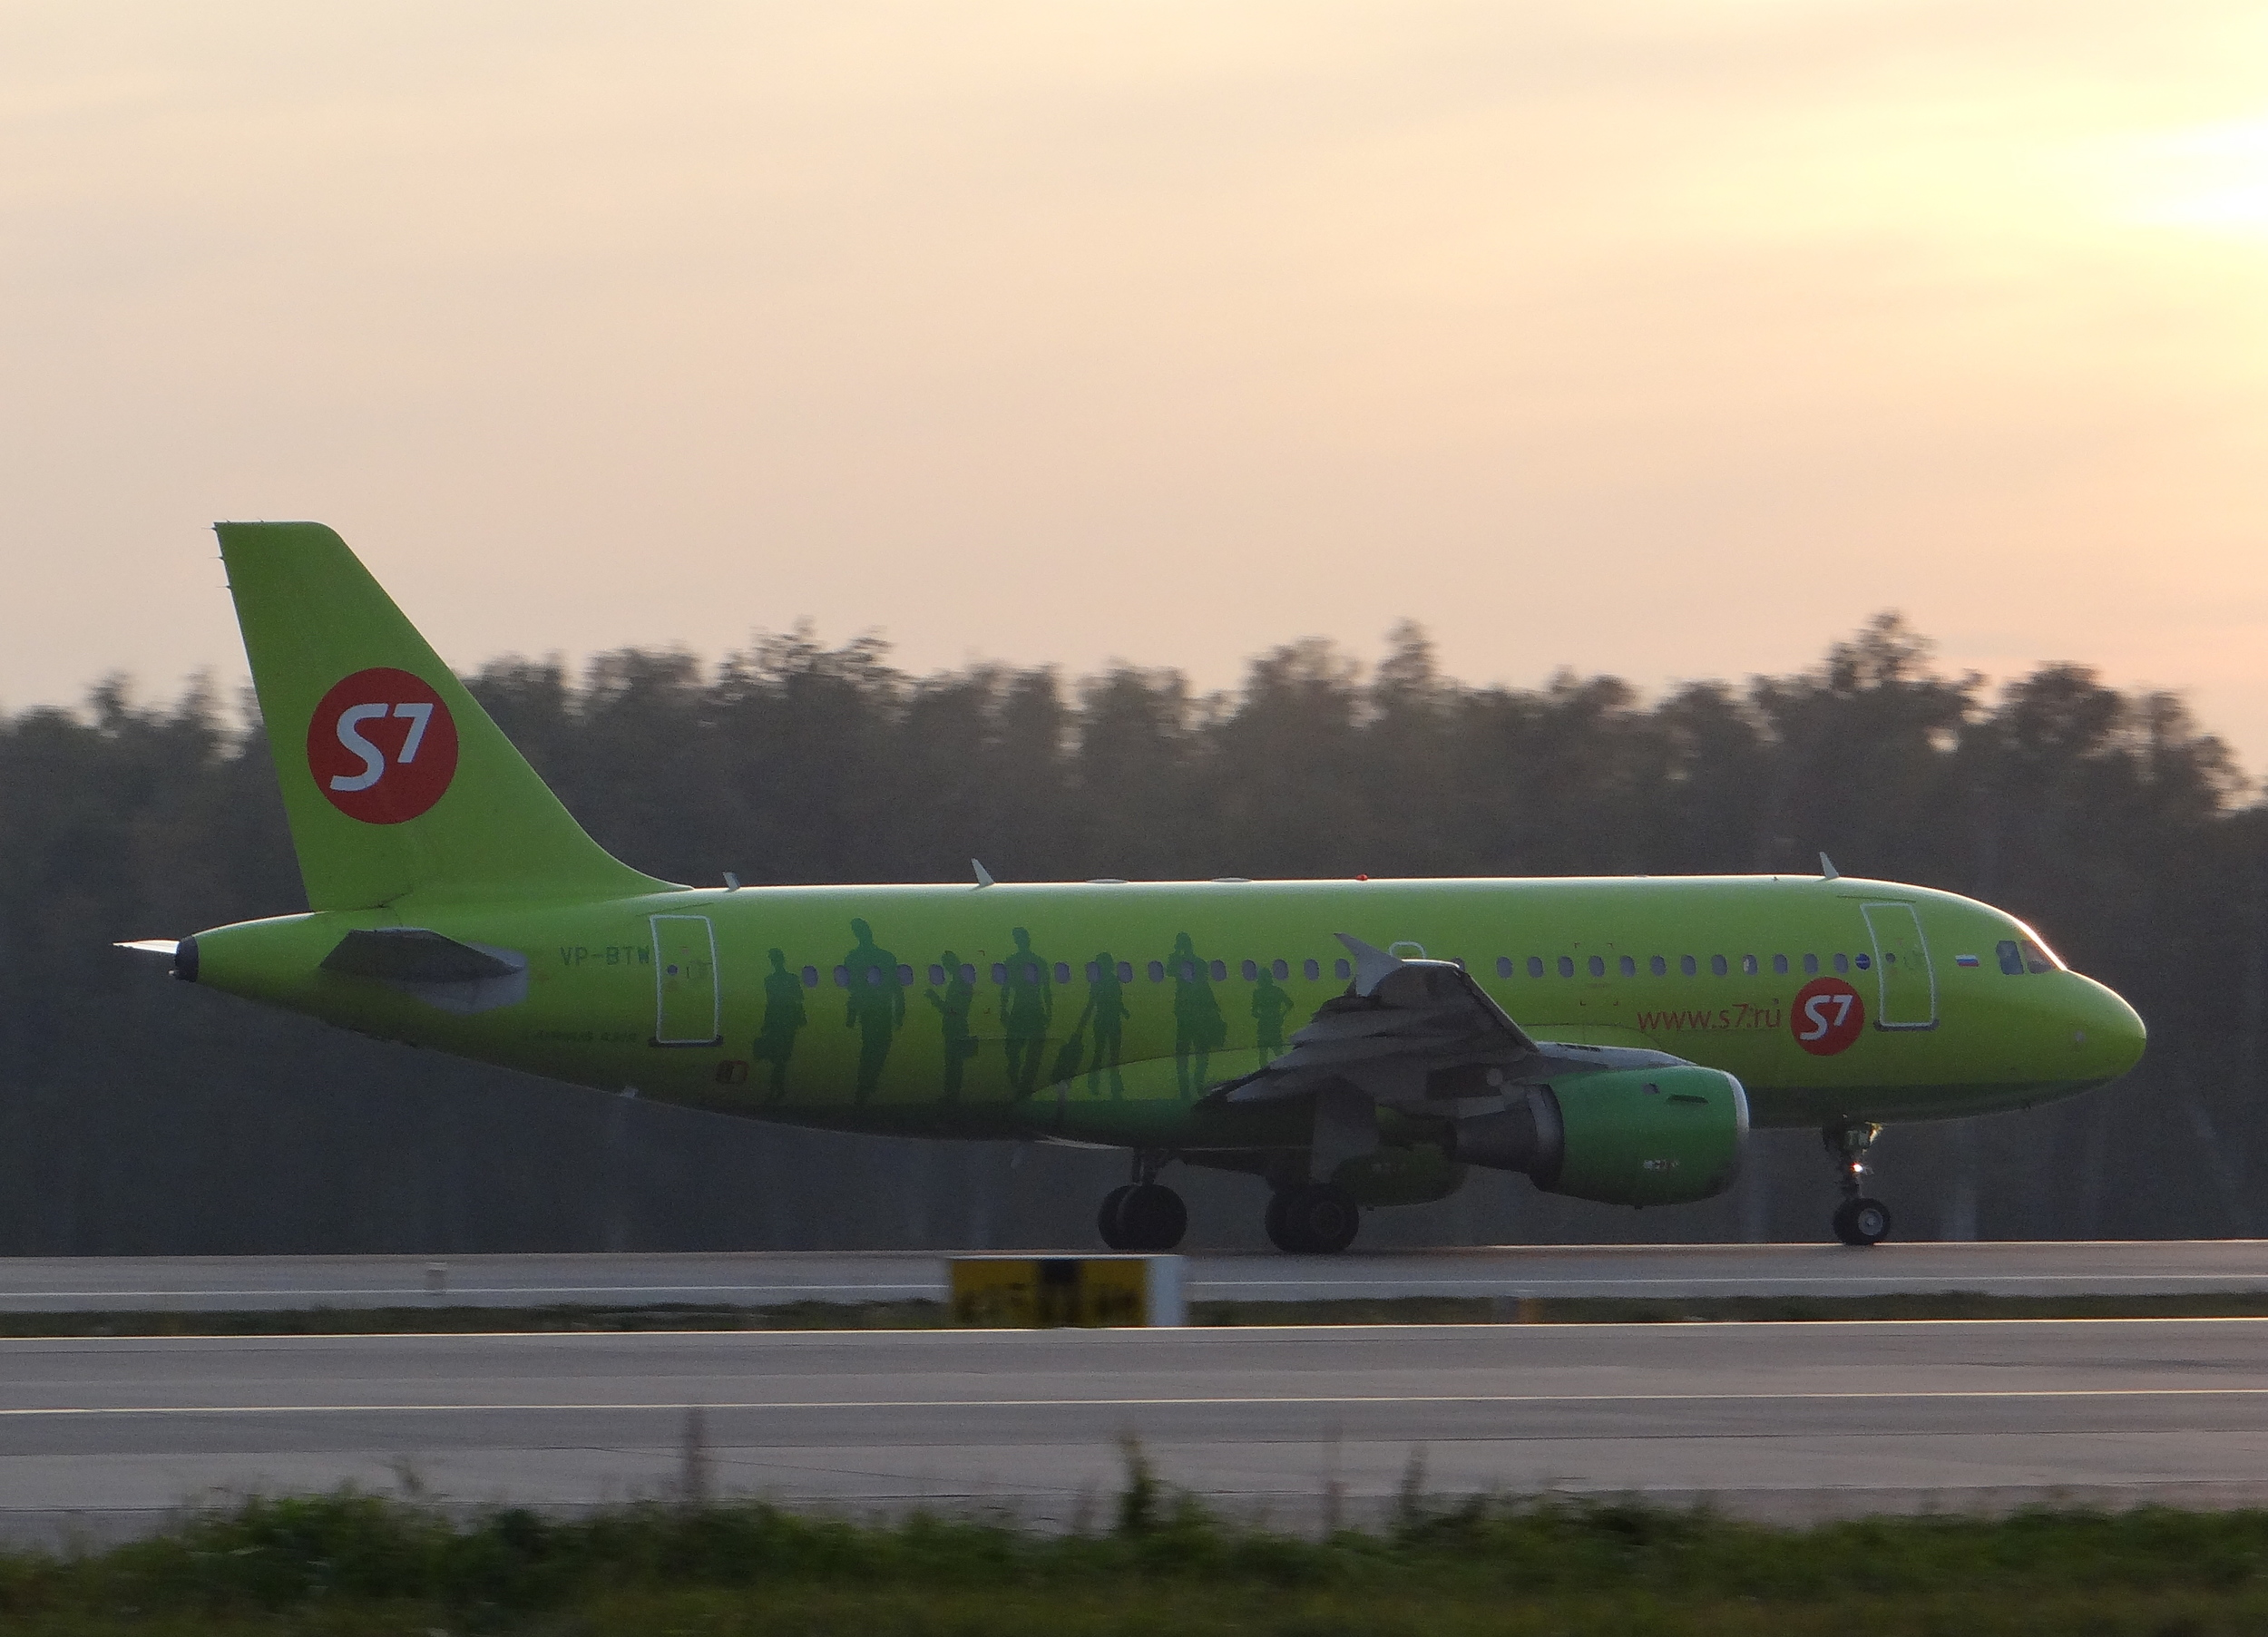 The bright green of S7, a common sight at DME